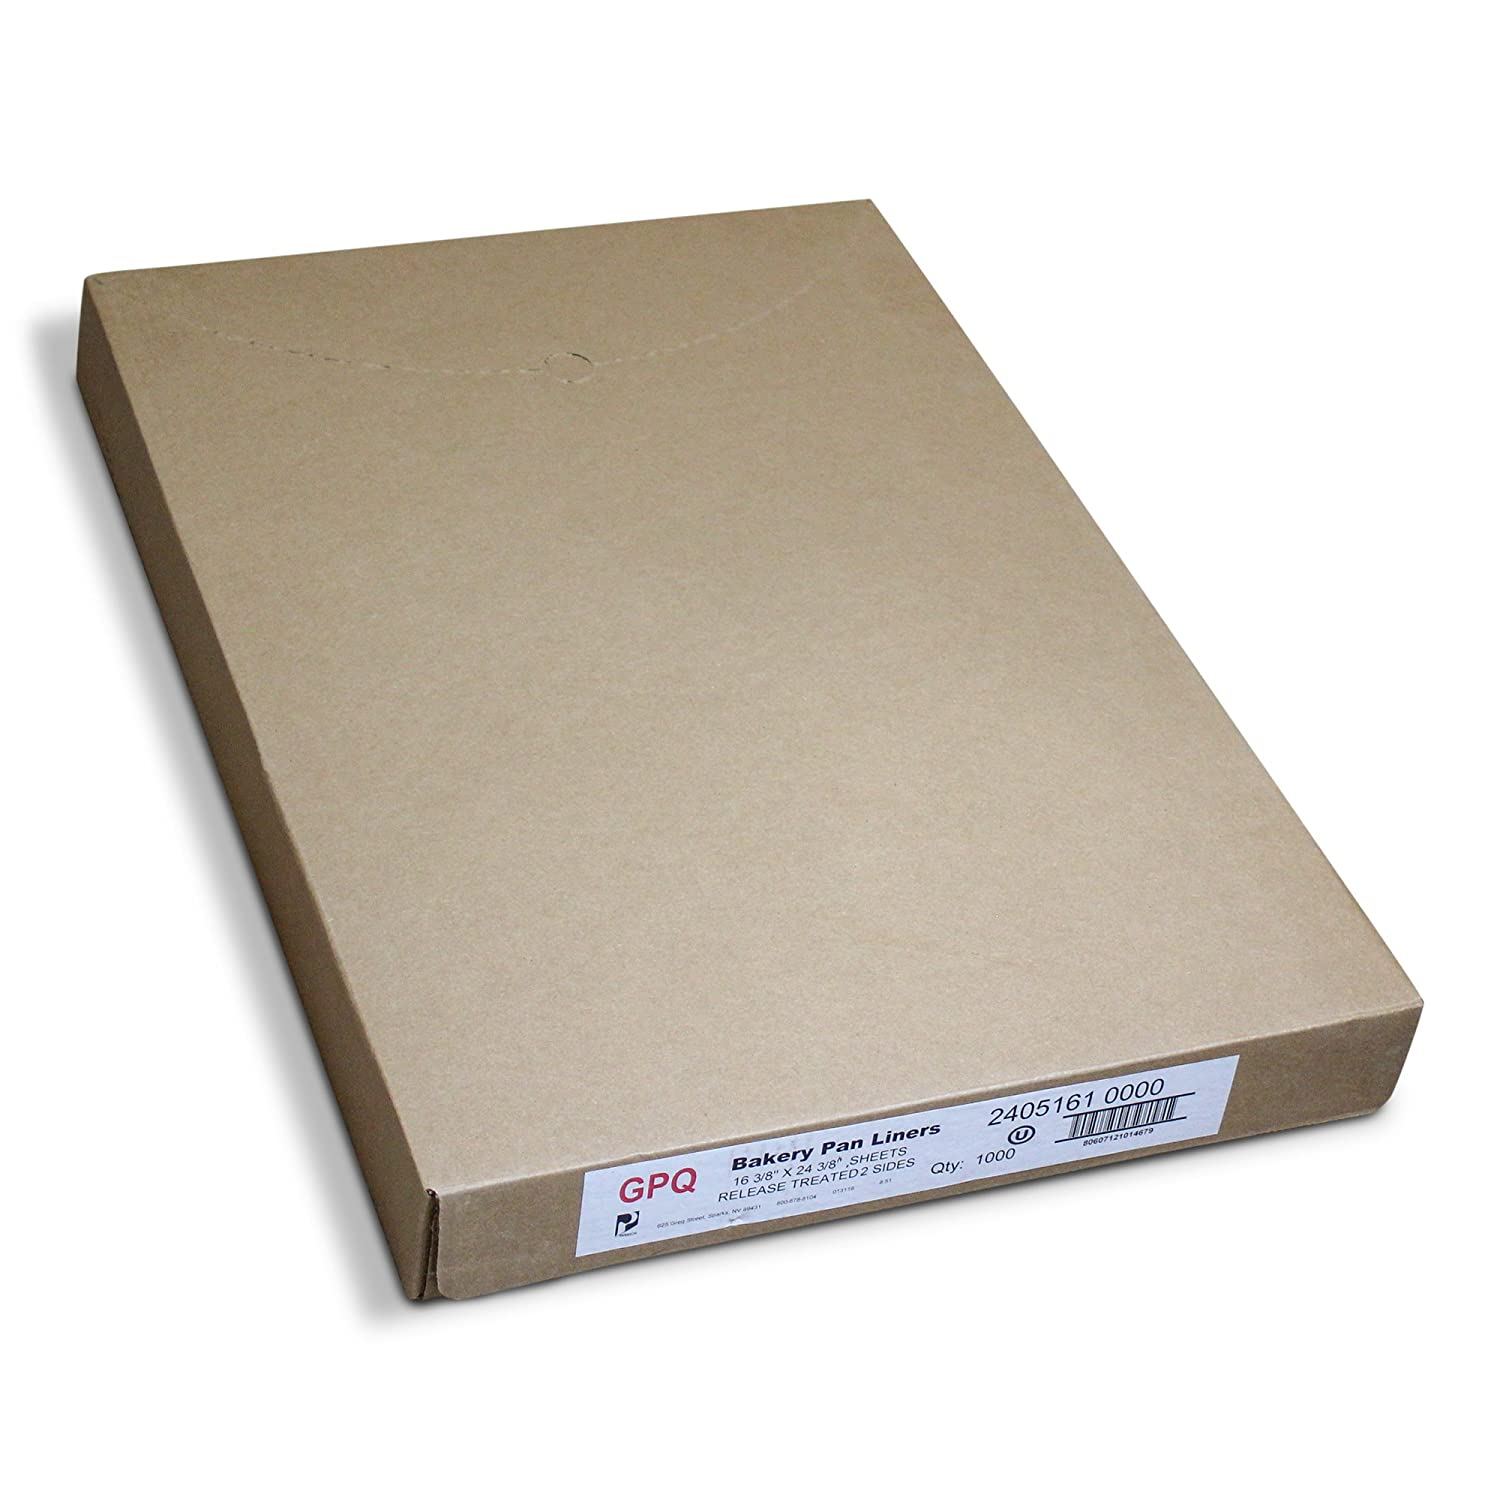 """Pan Liners for Commercial Baking Bulk - 1000 Count - Full Sized 16.38"""" x 24.38"""" - White - 425F - Grease Proof Paper Quilon Coating - Standard Release Sheets for Bakeries, Restaurants, and Catering"""